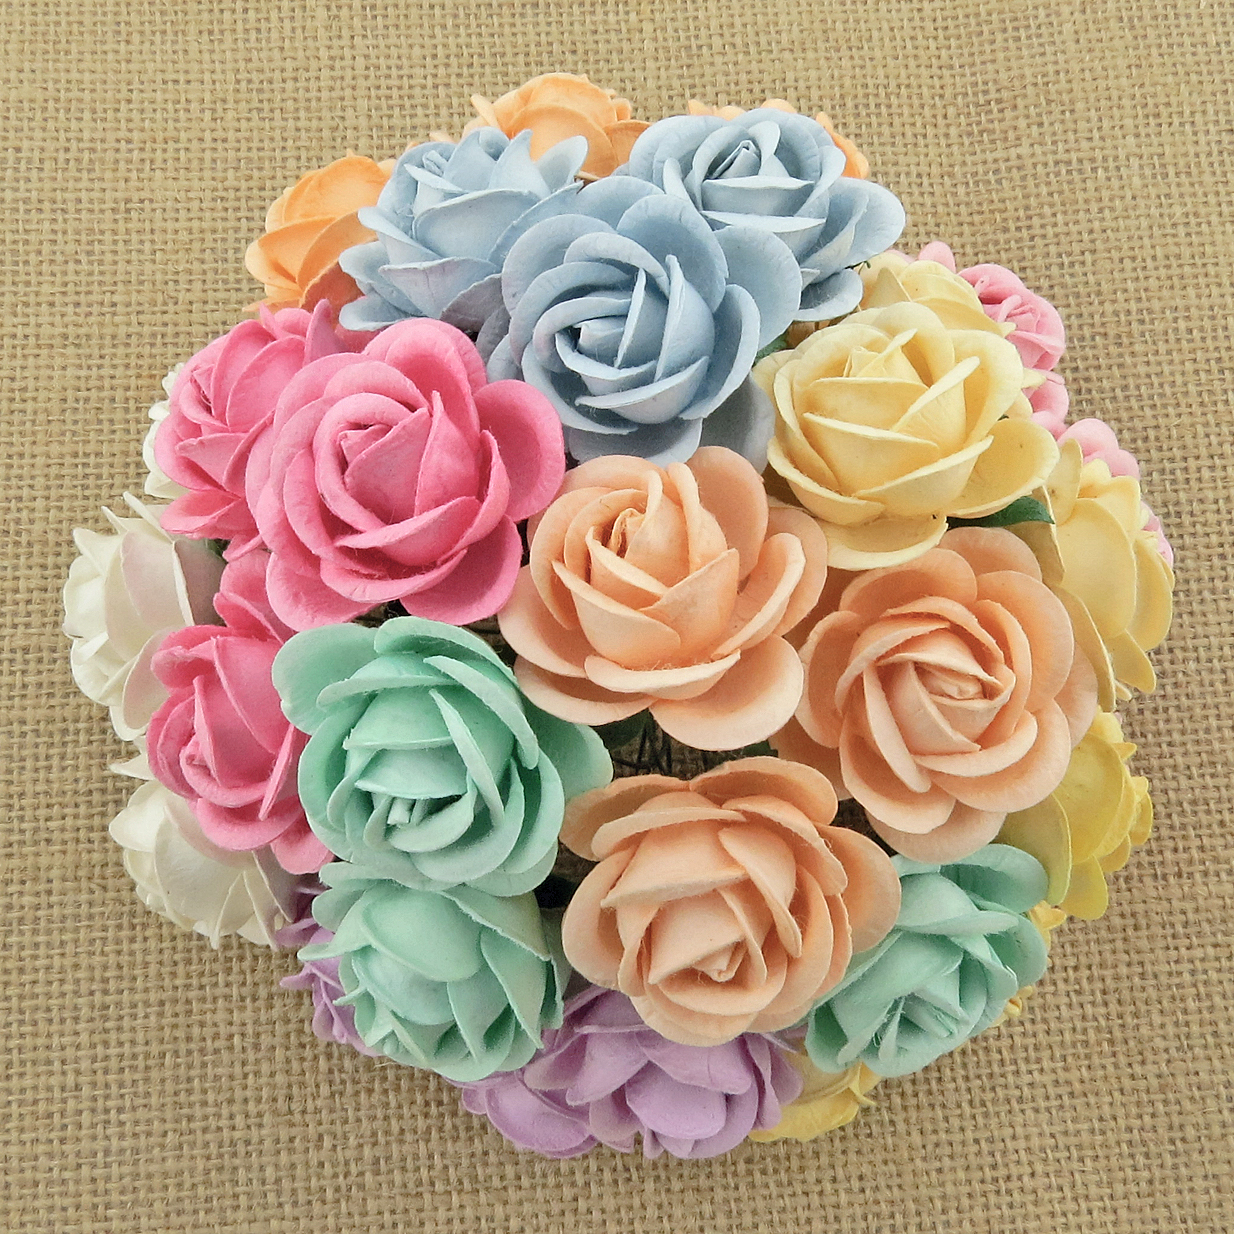 Chelsea Roses Promlee Flowers Wholesale Mulberry Paper Flowers